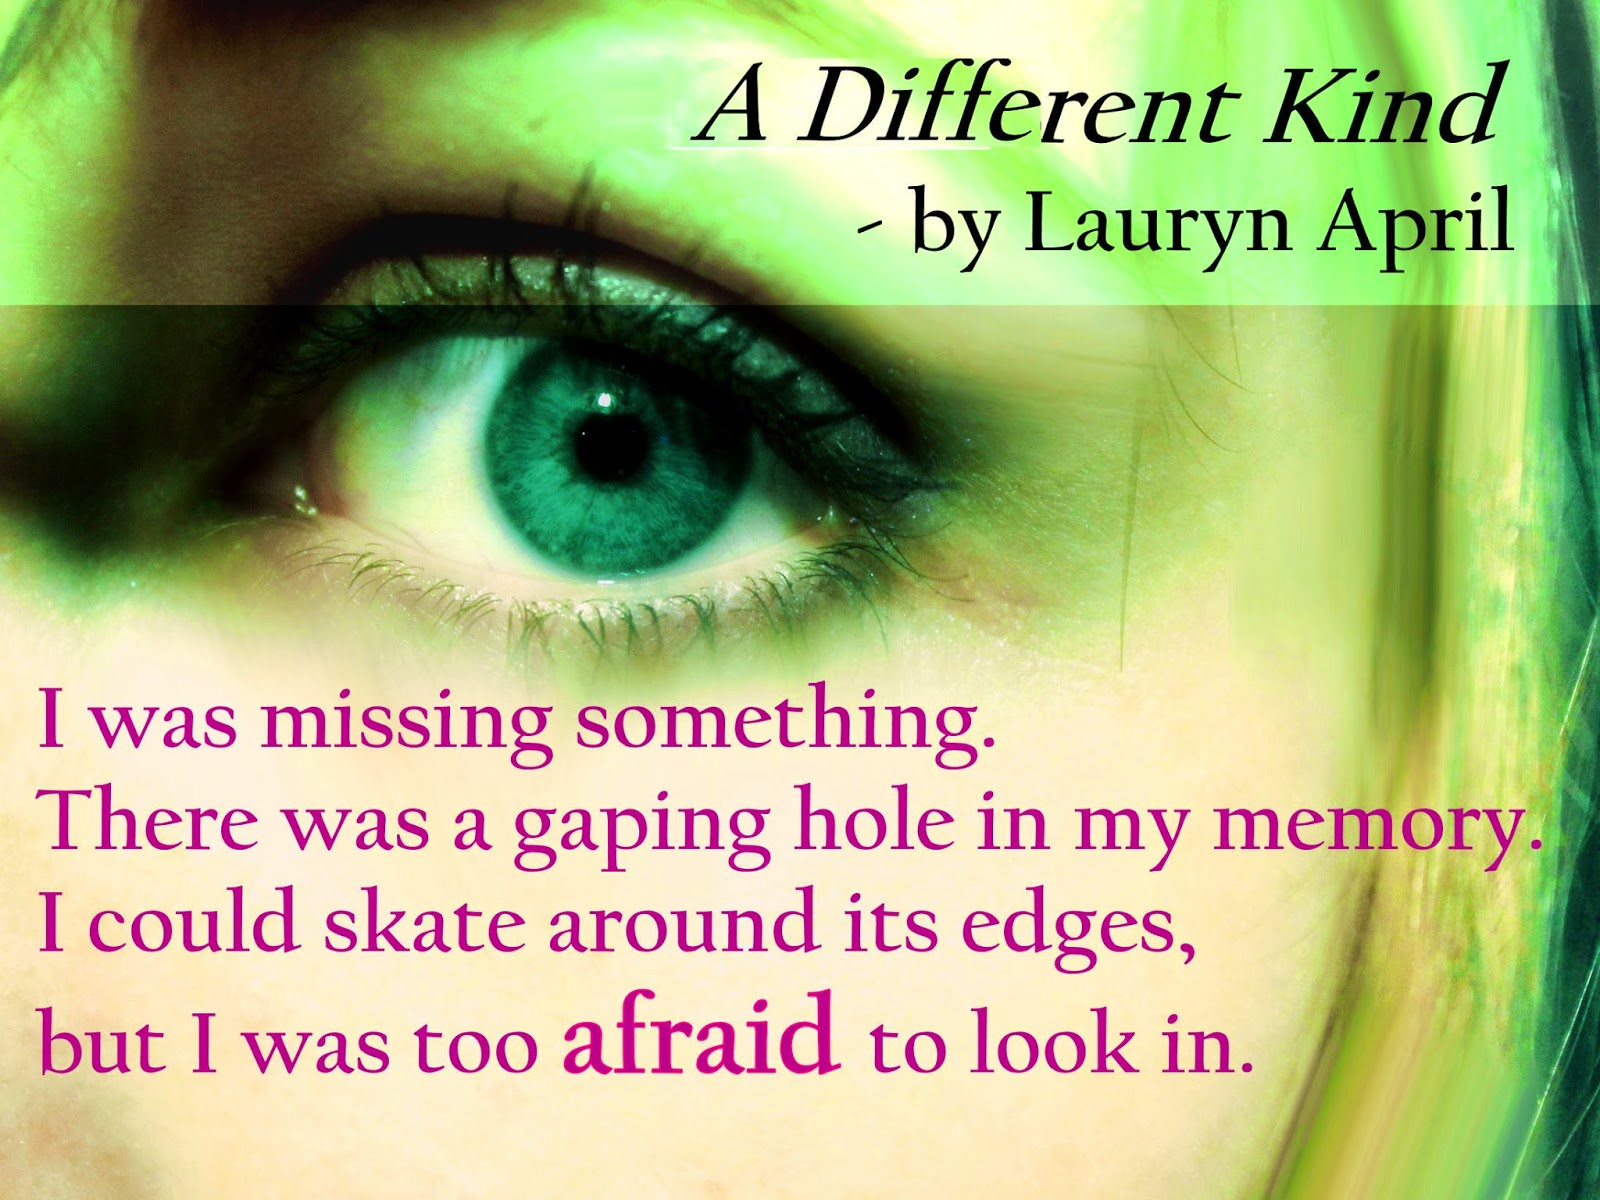 Lauryn April Writes: A Different Kind Now Available